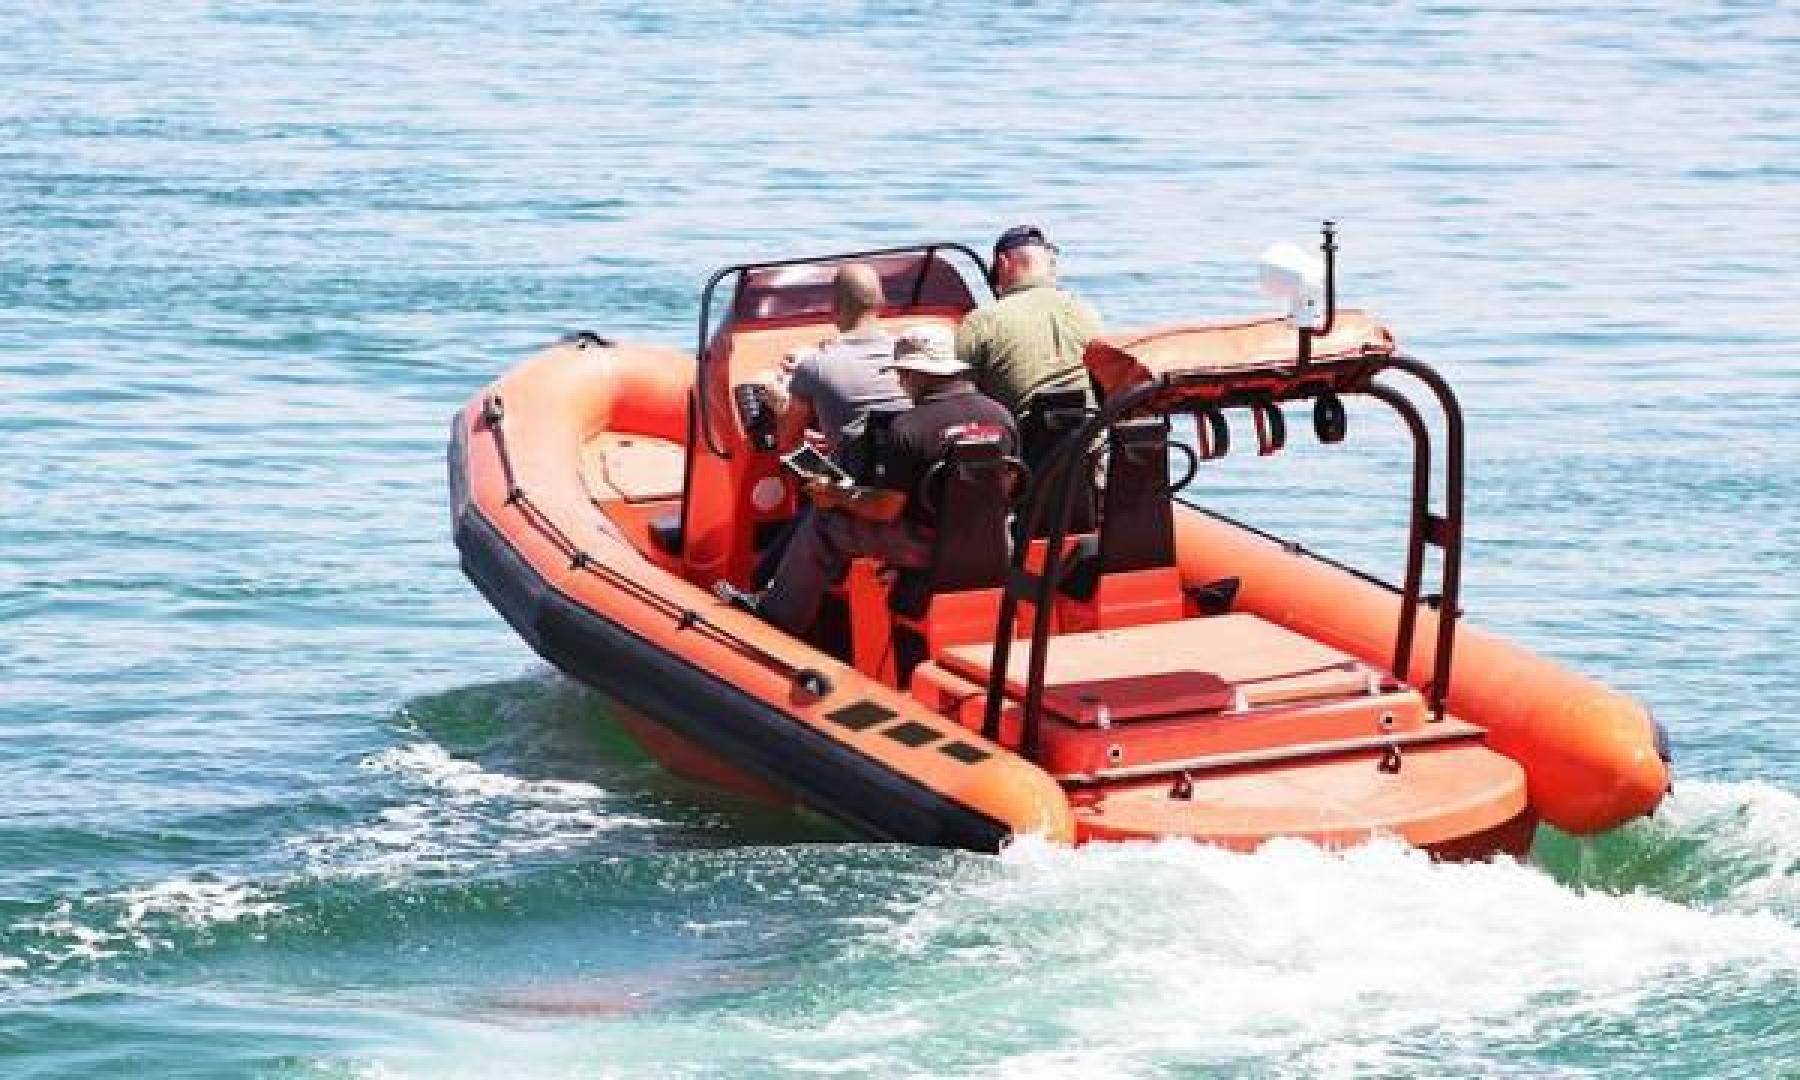 Ocean Craft Marine-9.5M RHIB Professional Search and Rescue 2021-Ocean Craft Marine 9.5M RHIB Professional Search and Rescue Fort Lauderdale-Florida-United States-1522810 | Thumbnail